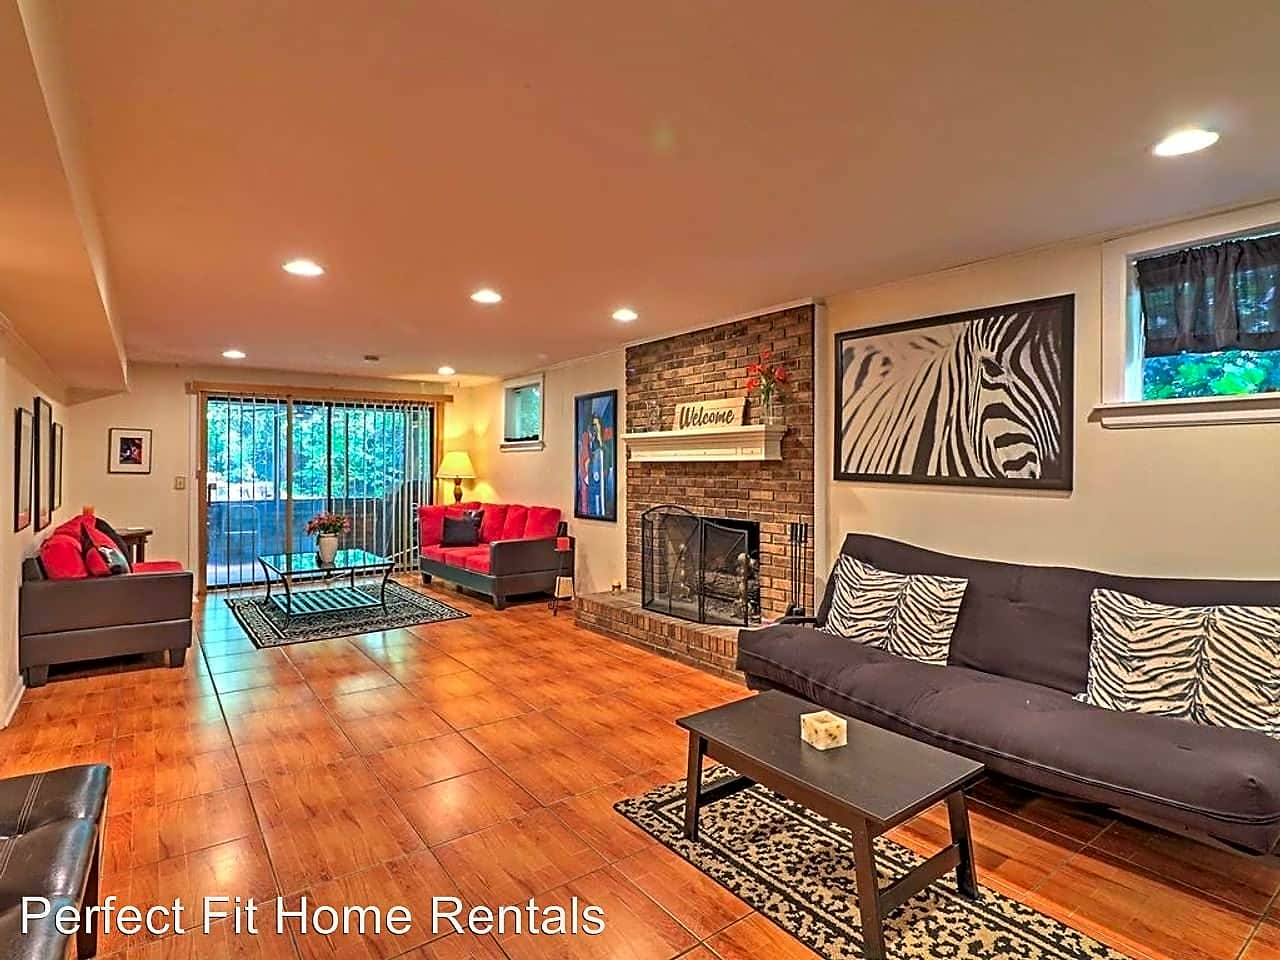 843 Artwood Rd NE Apartments - Atlanta, GA 30307